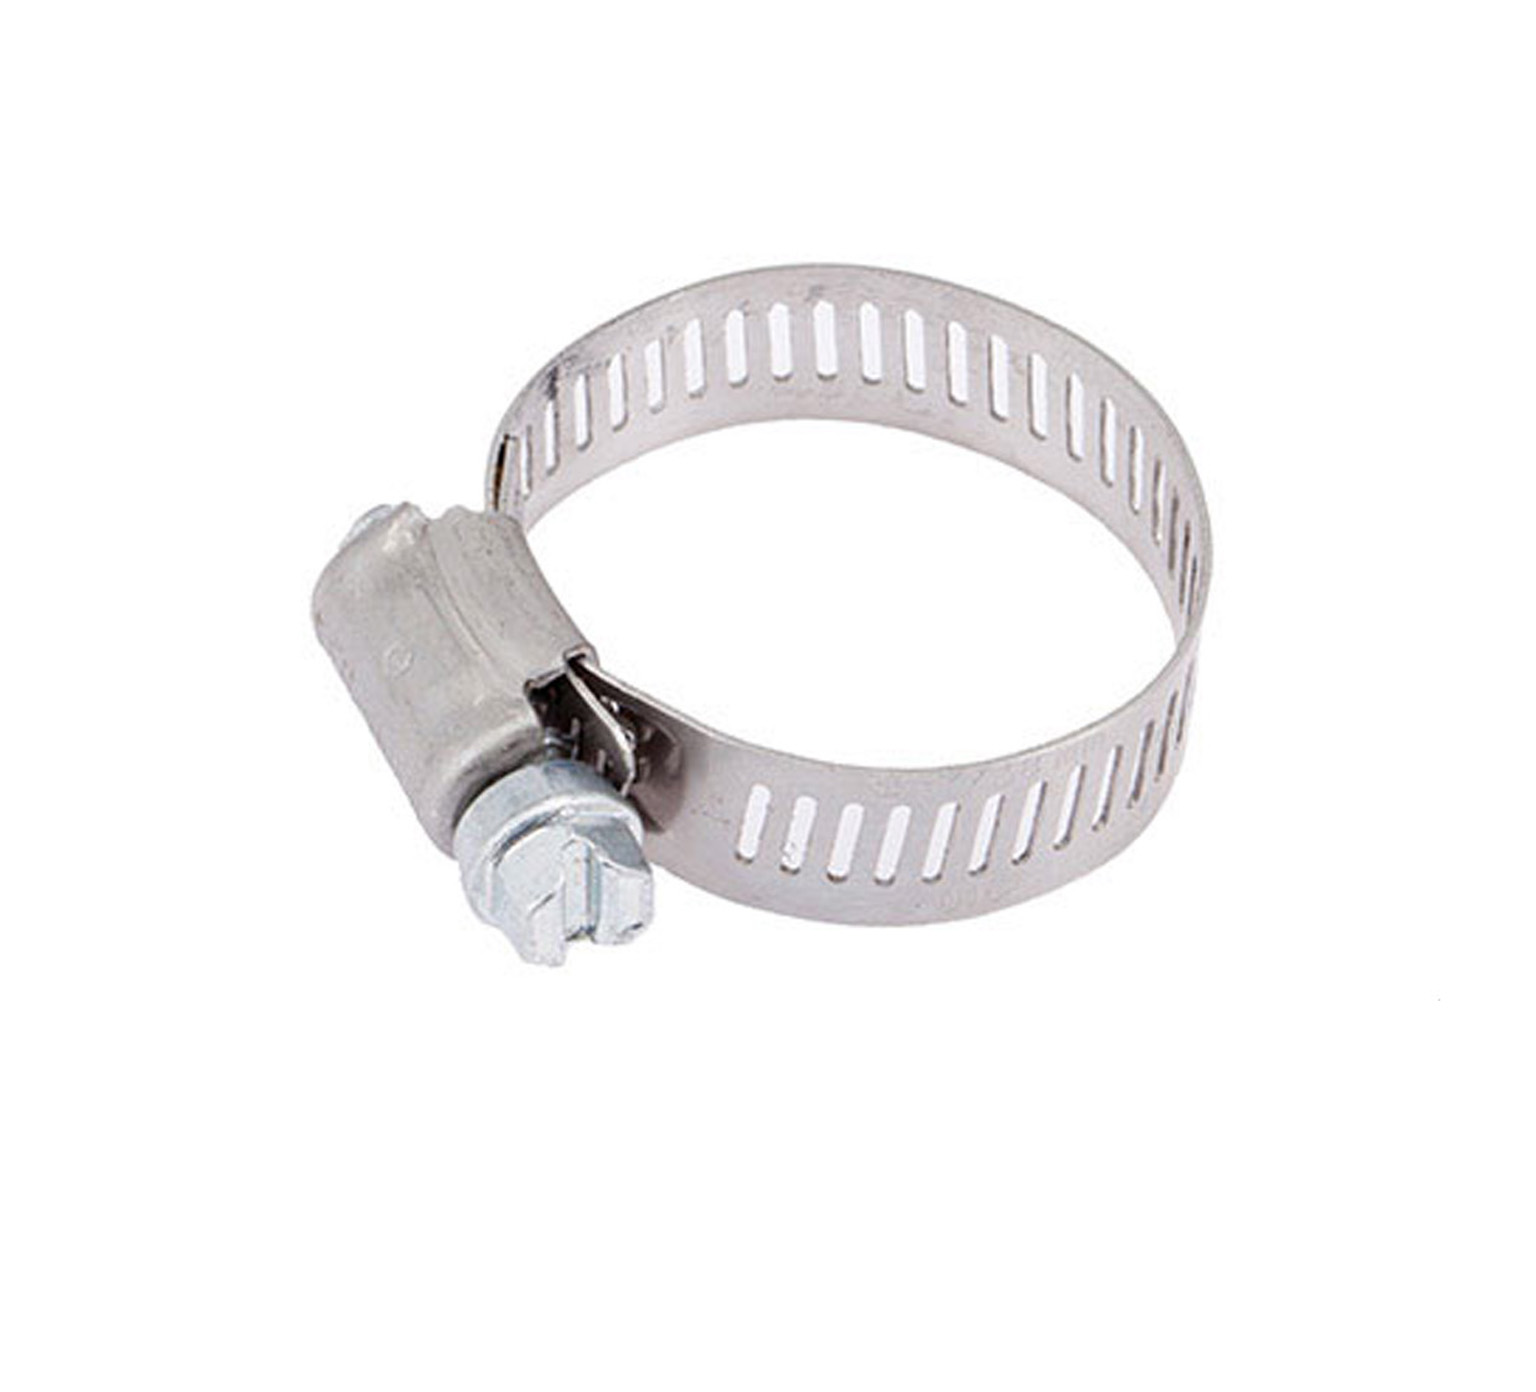 11399 Stainless Steel Hose Clamp - 0.75 - 1.5 in D x 0.5 in alt 1